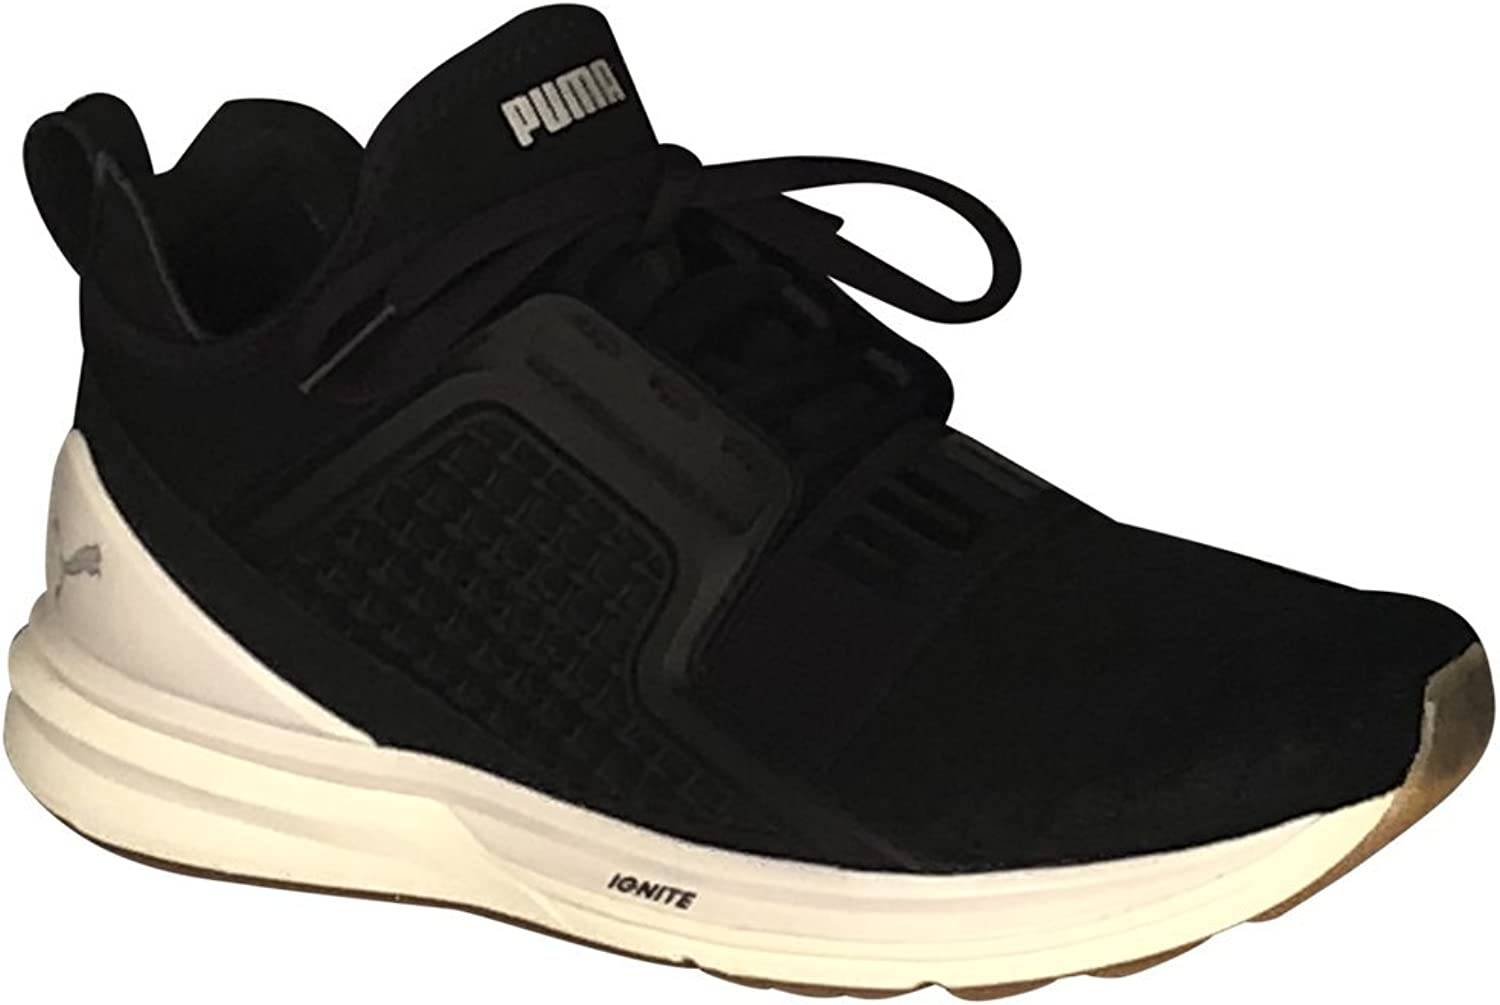 PUMA Women's Ignite Limitless Reptile Fashion Sneakers Black